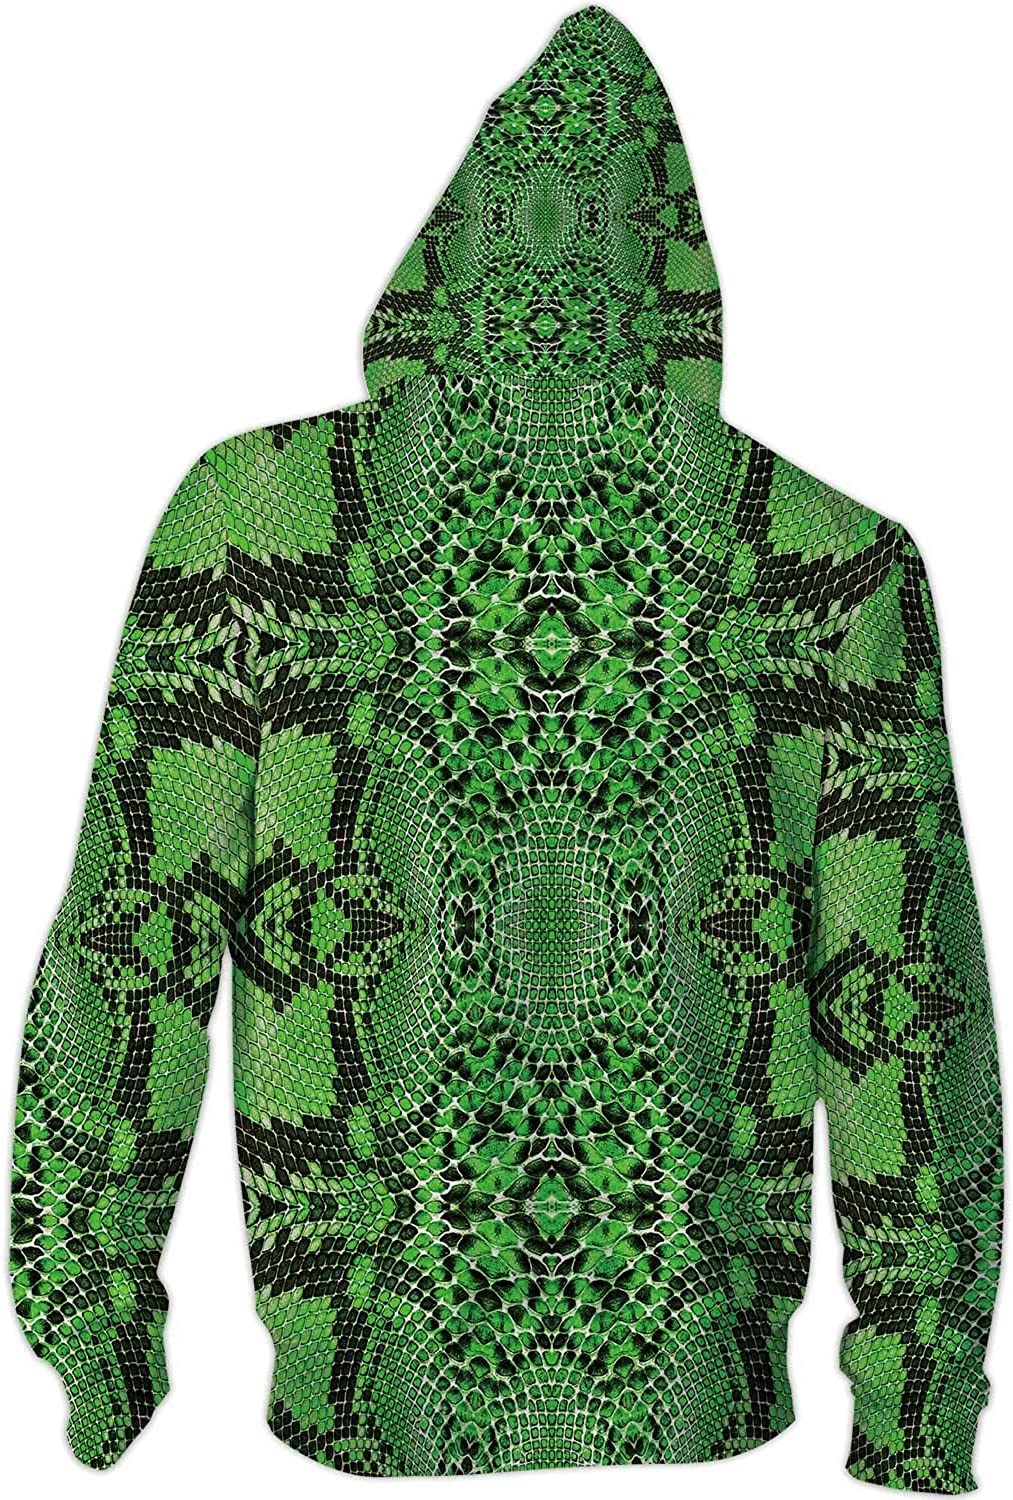 Colorful Festive Label with Burst Illustration Russia,Men//Womens Warm Outerwear Jackets and Hoodies Label S